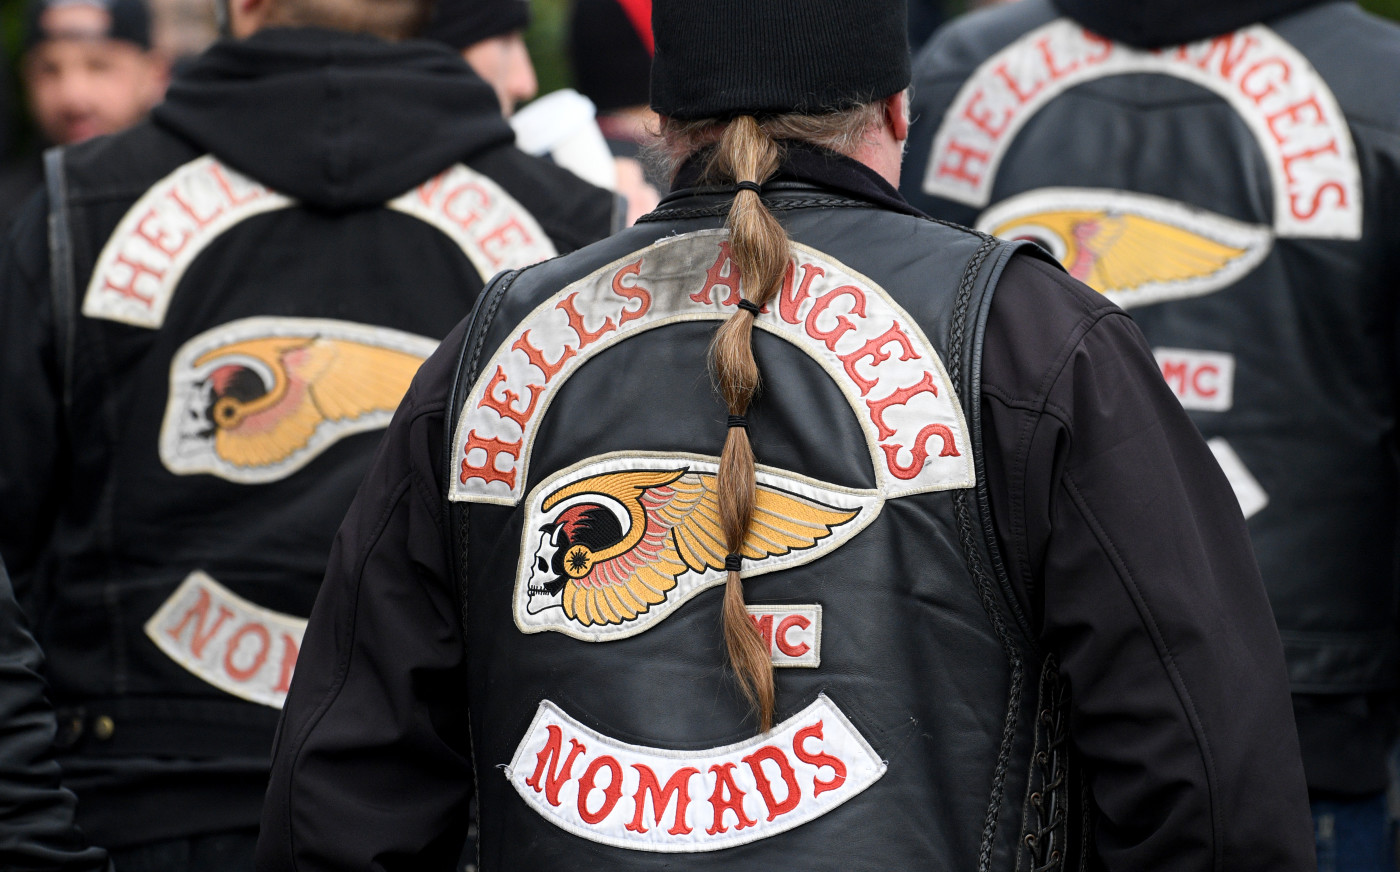 Most Dangerous Motorcycle Gangs